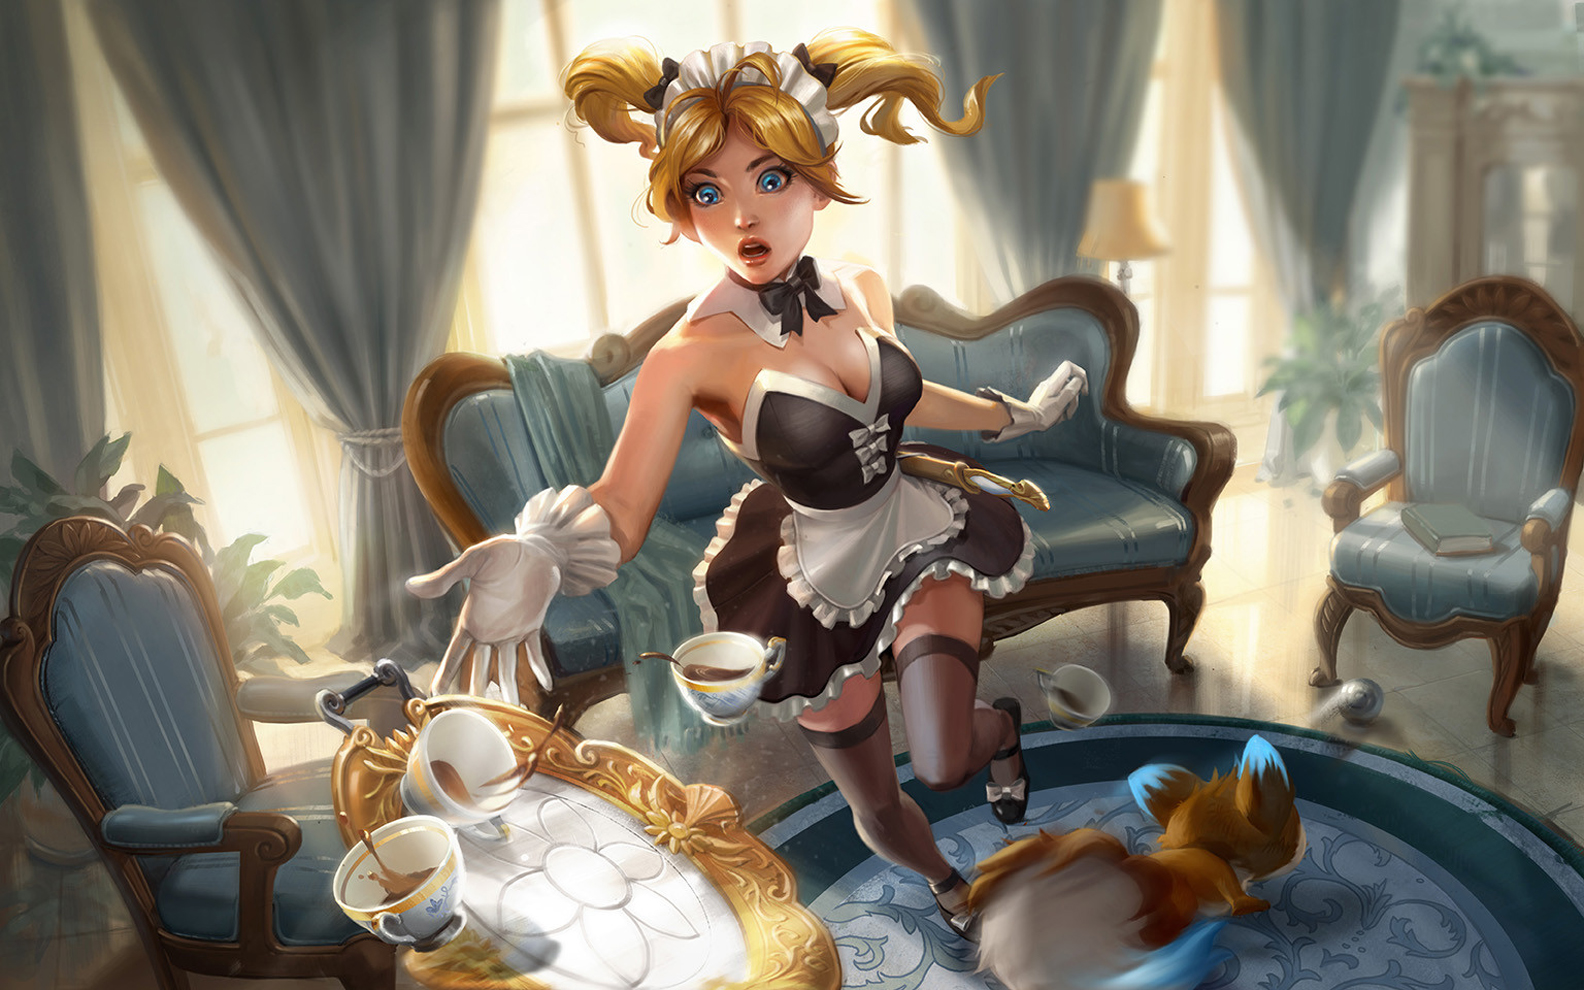 anna-christenson-amaterasu-marvelousmaid-promo.jpg